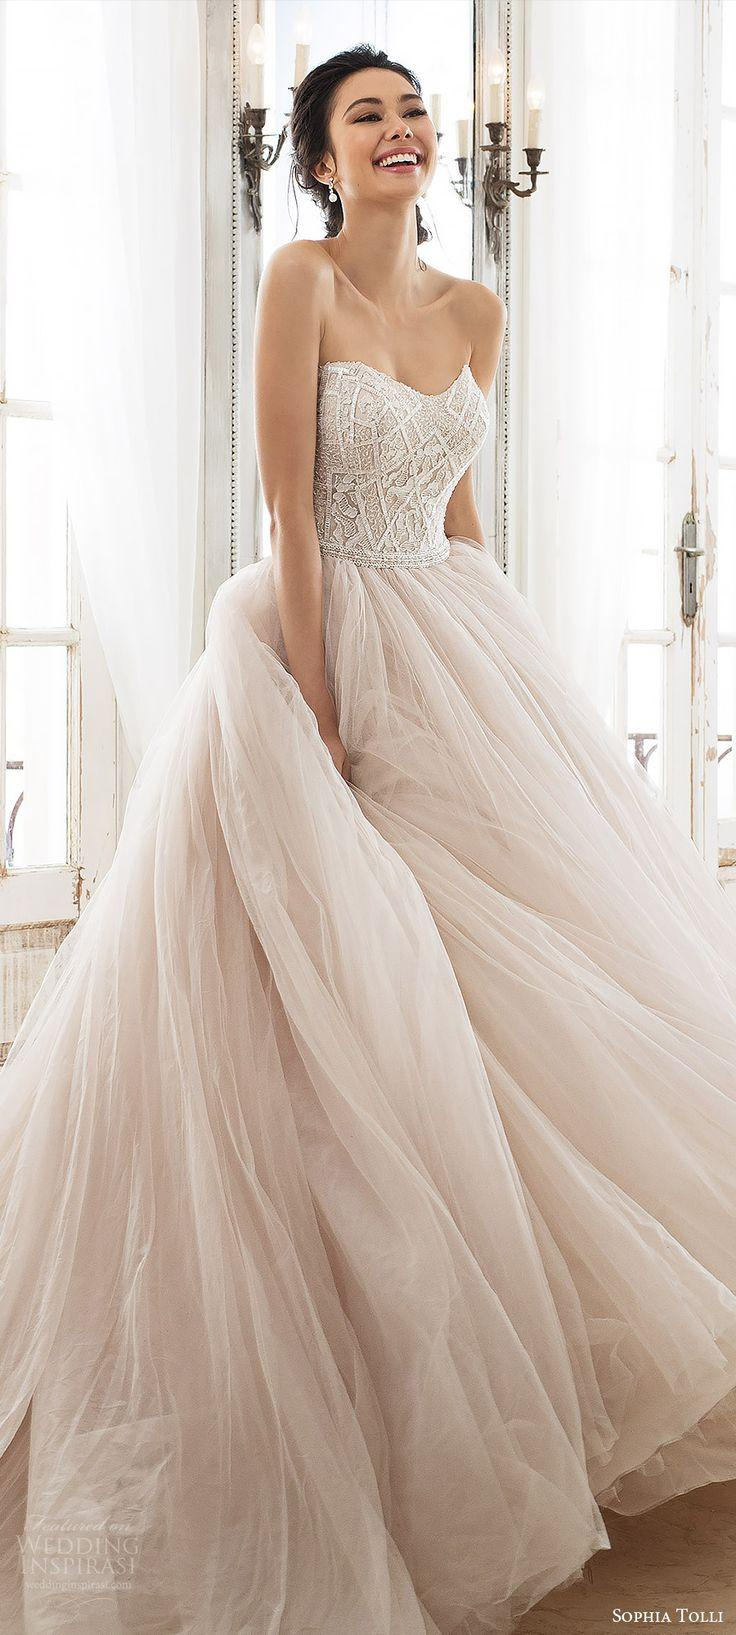 Wedding - 2018 Wedding Dress Trends To Love Part 1 — Silhouettes And Sleeves